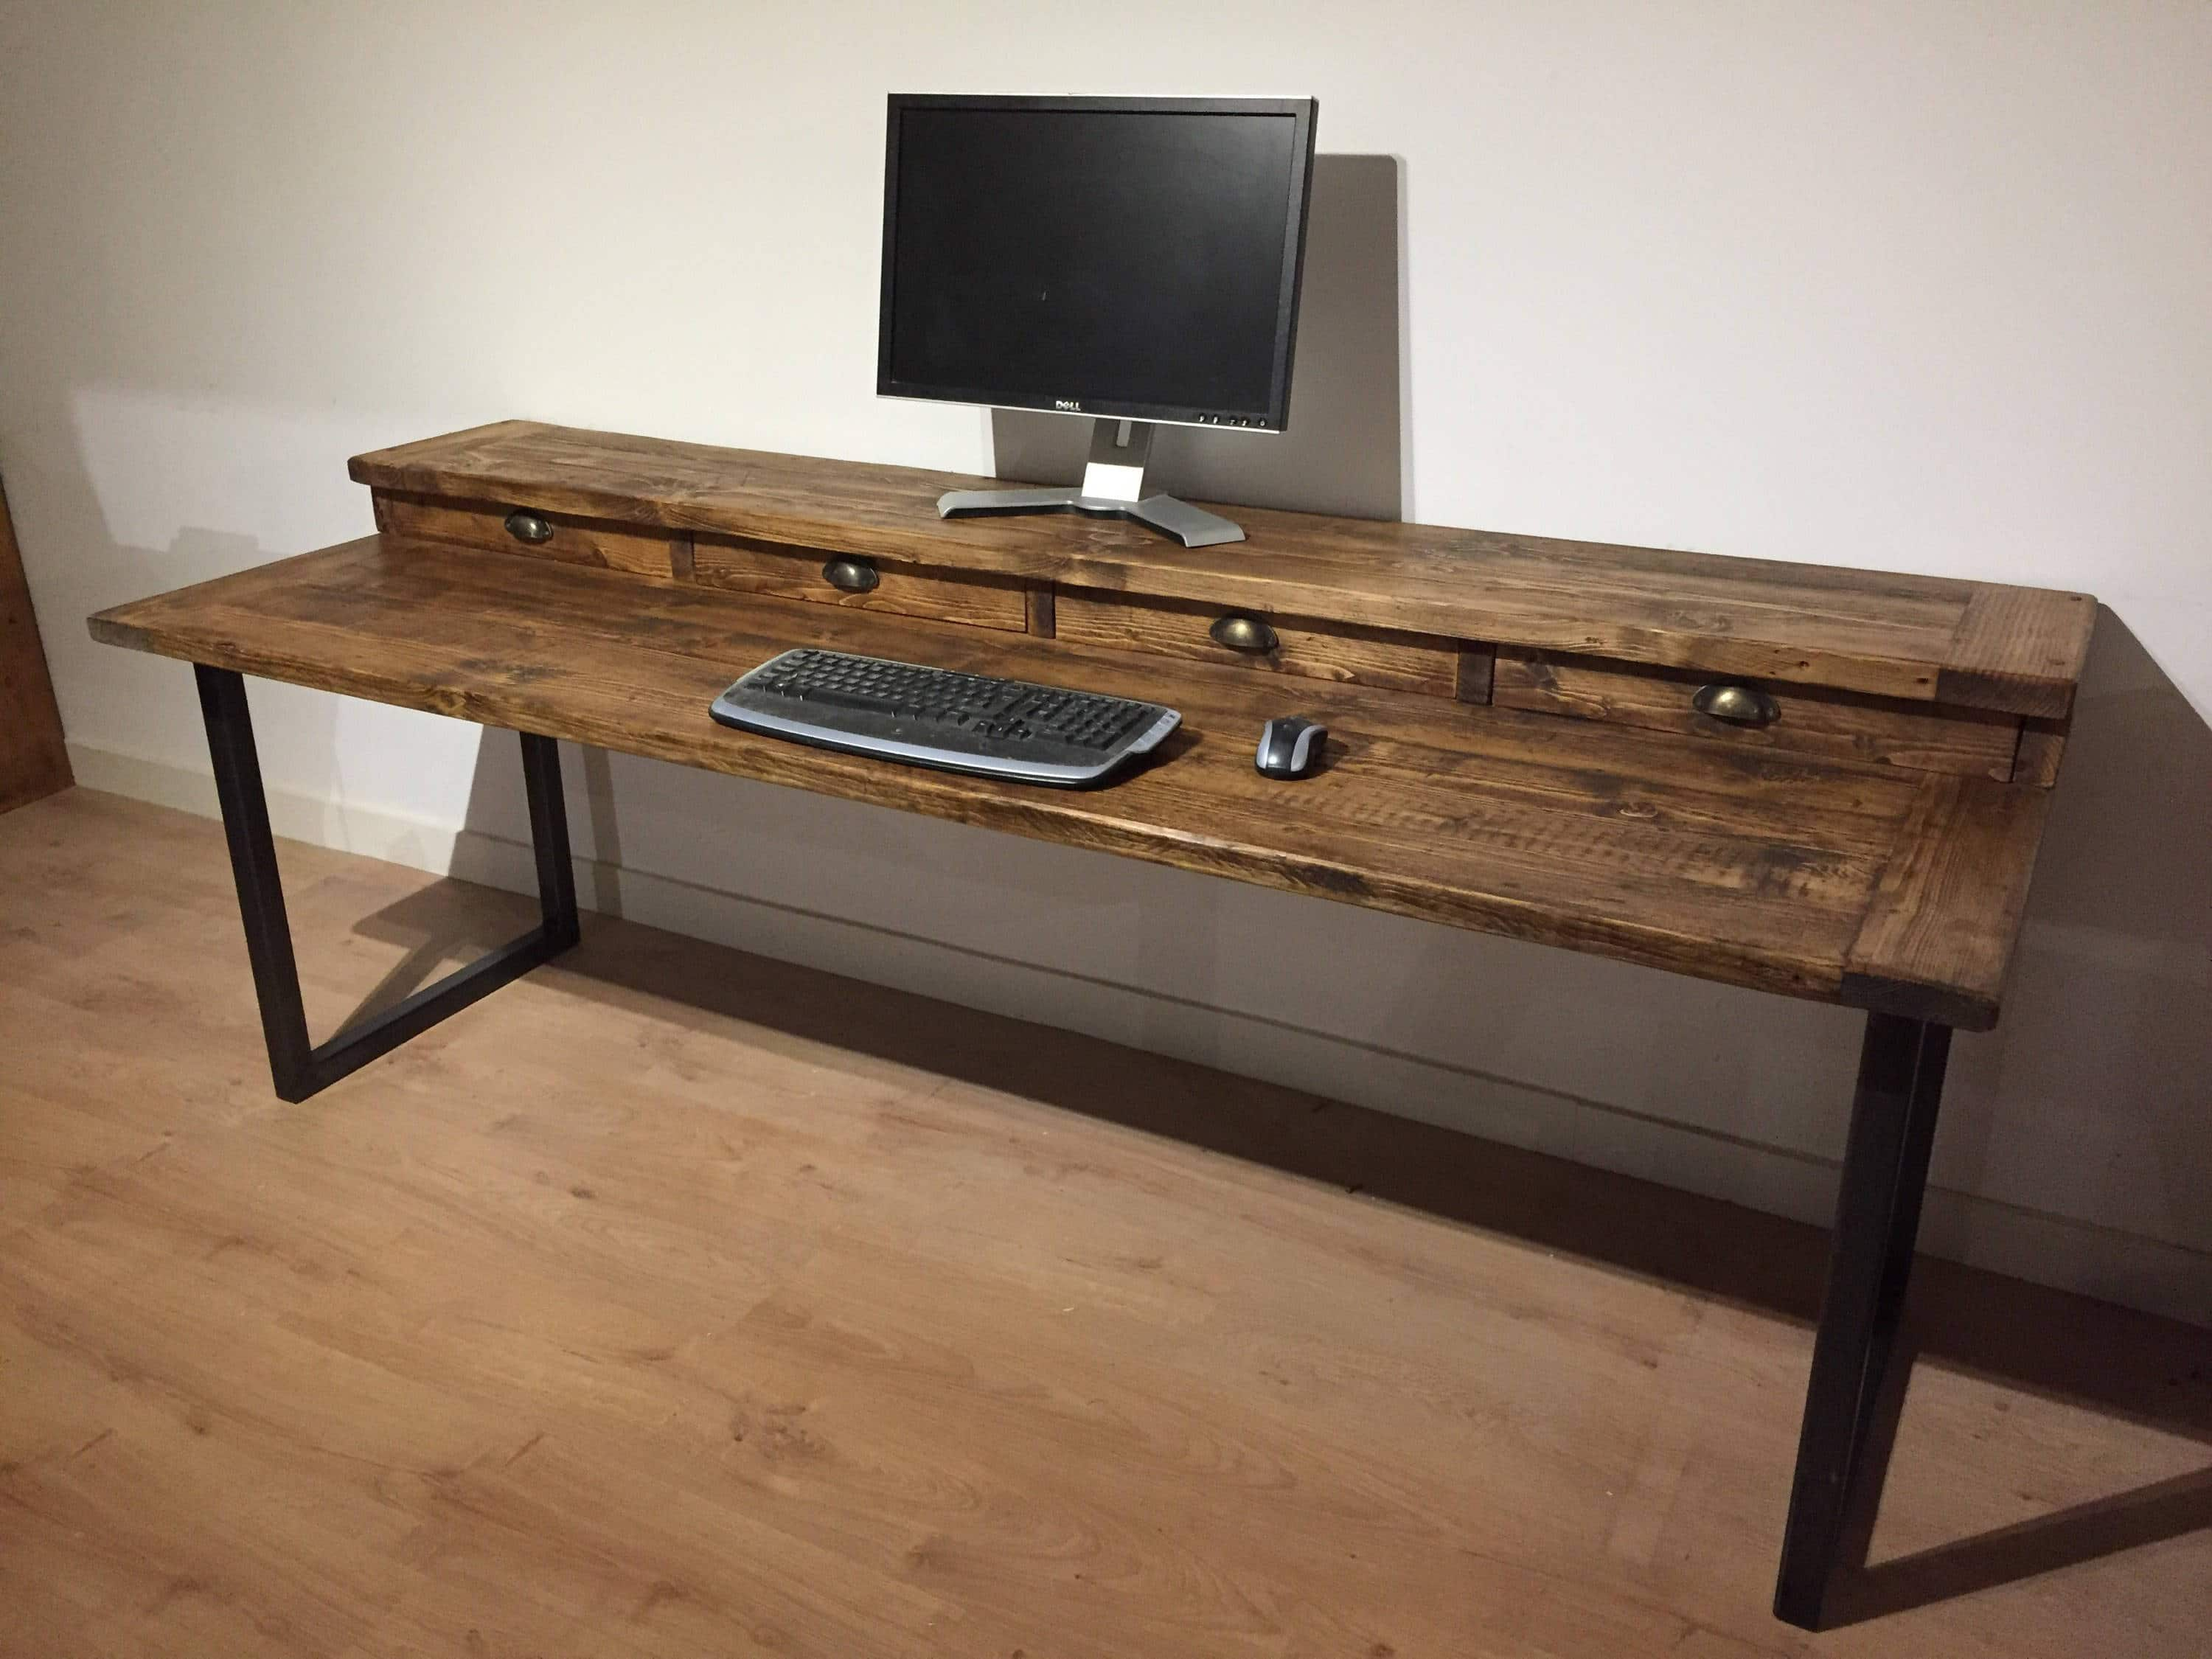 Bespoke Reclaimed Pine Extra Large Desk With 4 Drawers And Square Frame Steel Legs